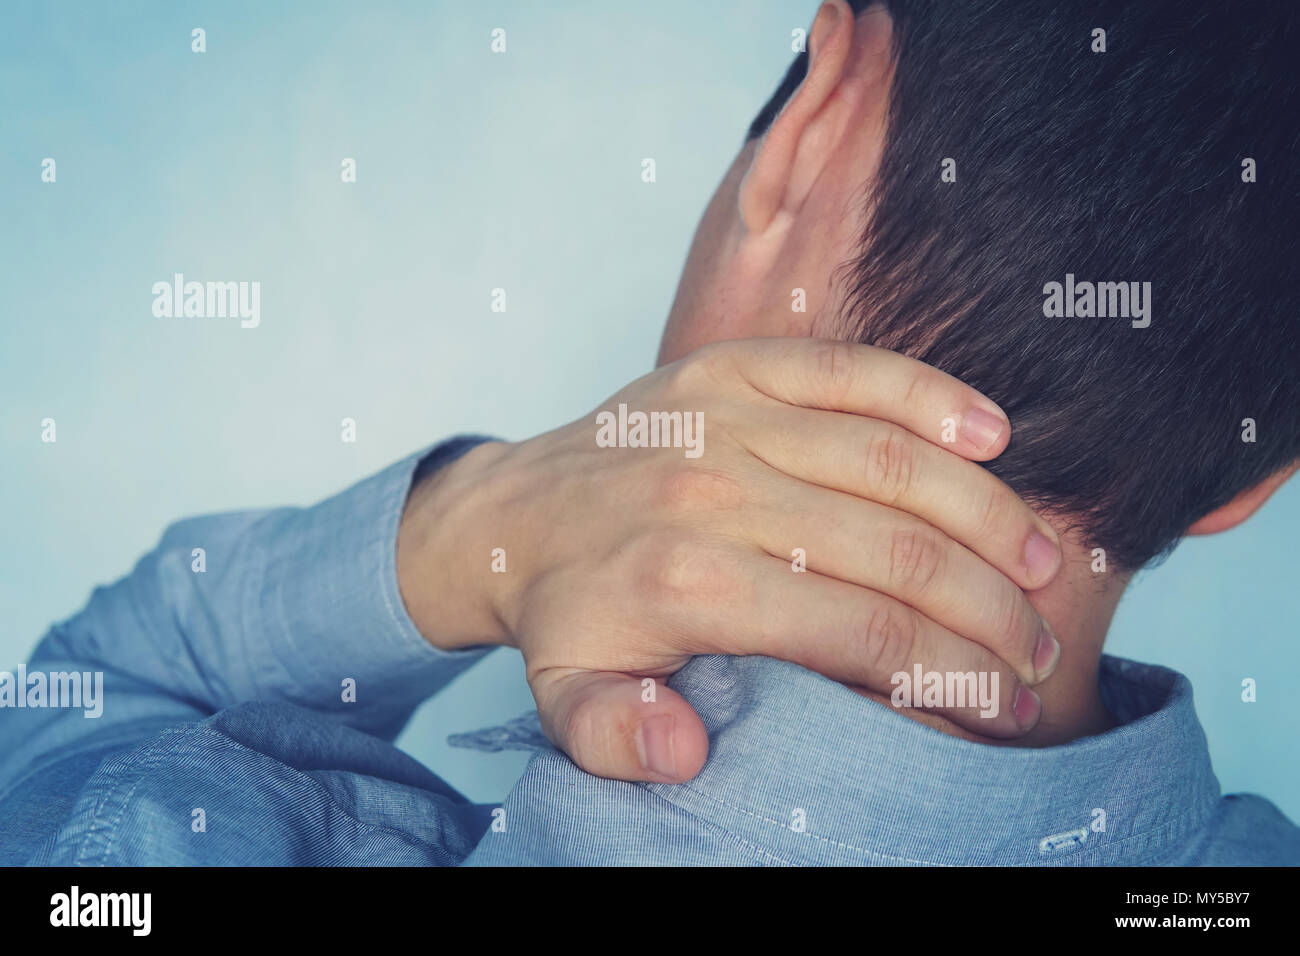 Close up of young man hand on his neck - neck pain concept. a fracture of the cervical vertebrae. young man holds his hand on the neck on a blue backg - Stock Image